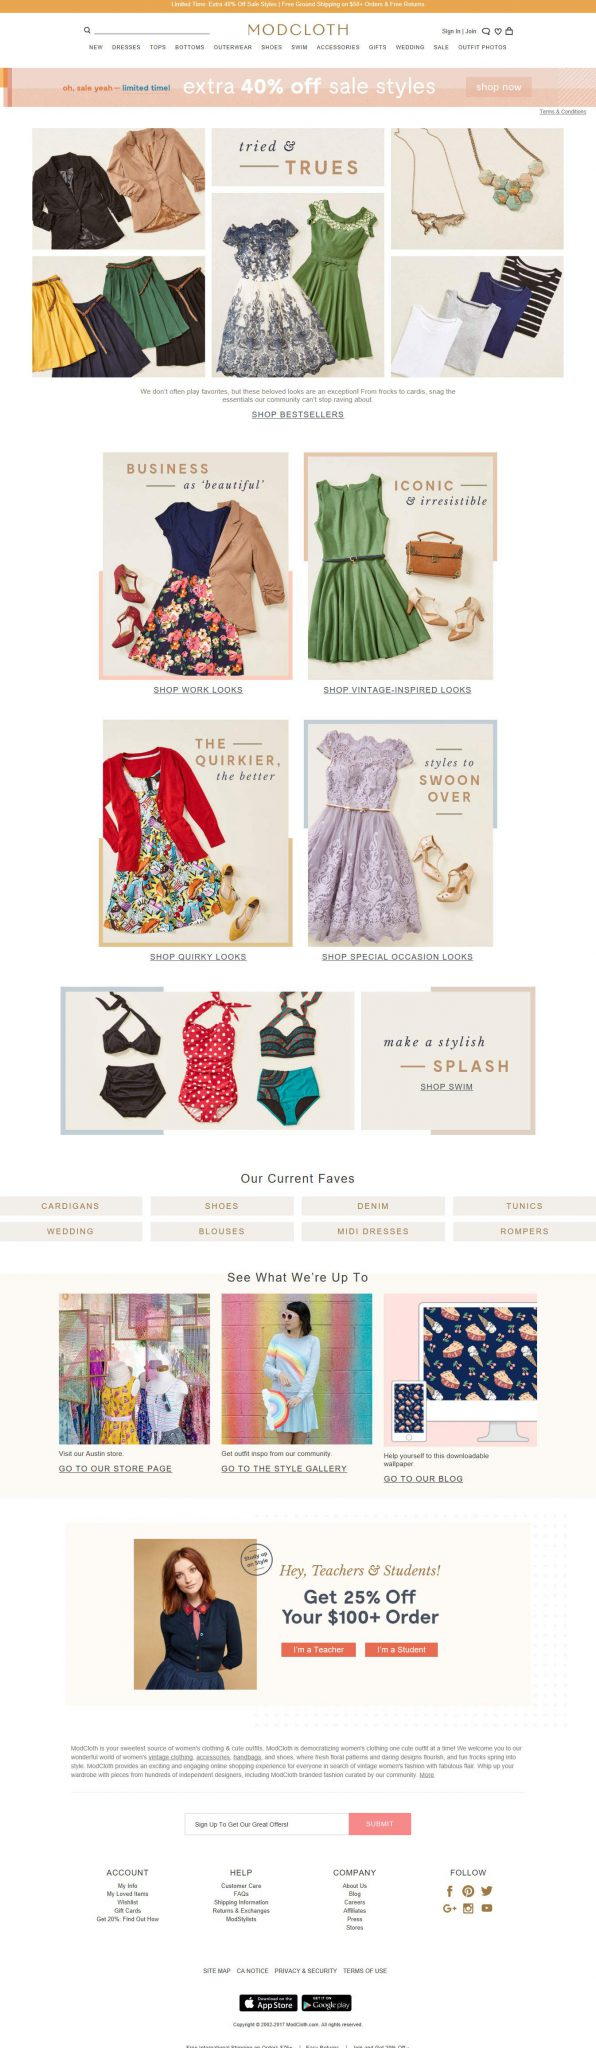 Modcloth different dresses eCommerce website for females